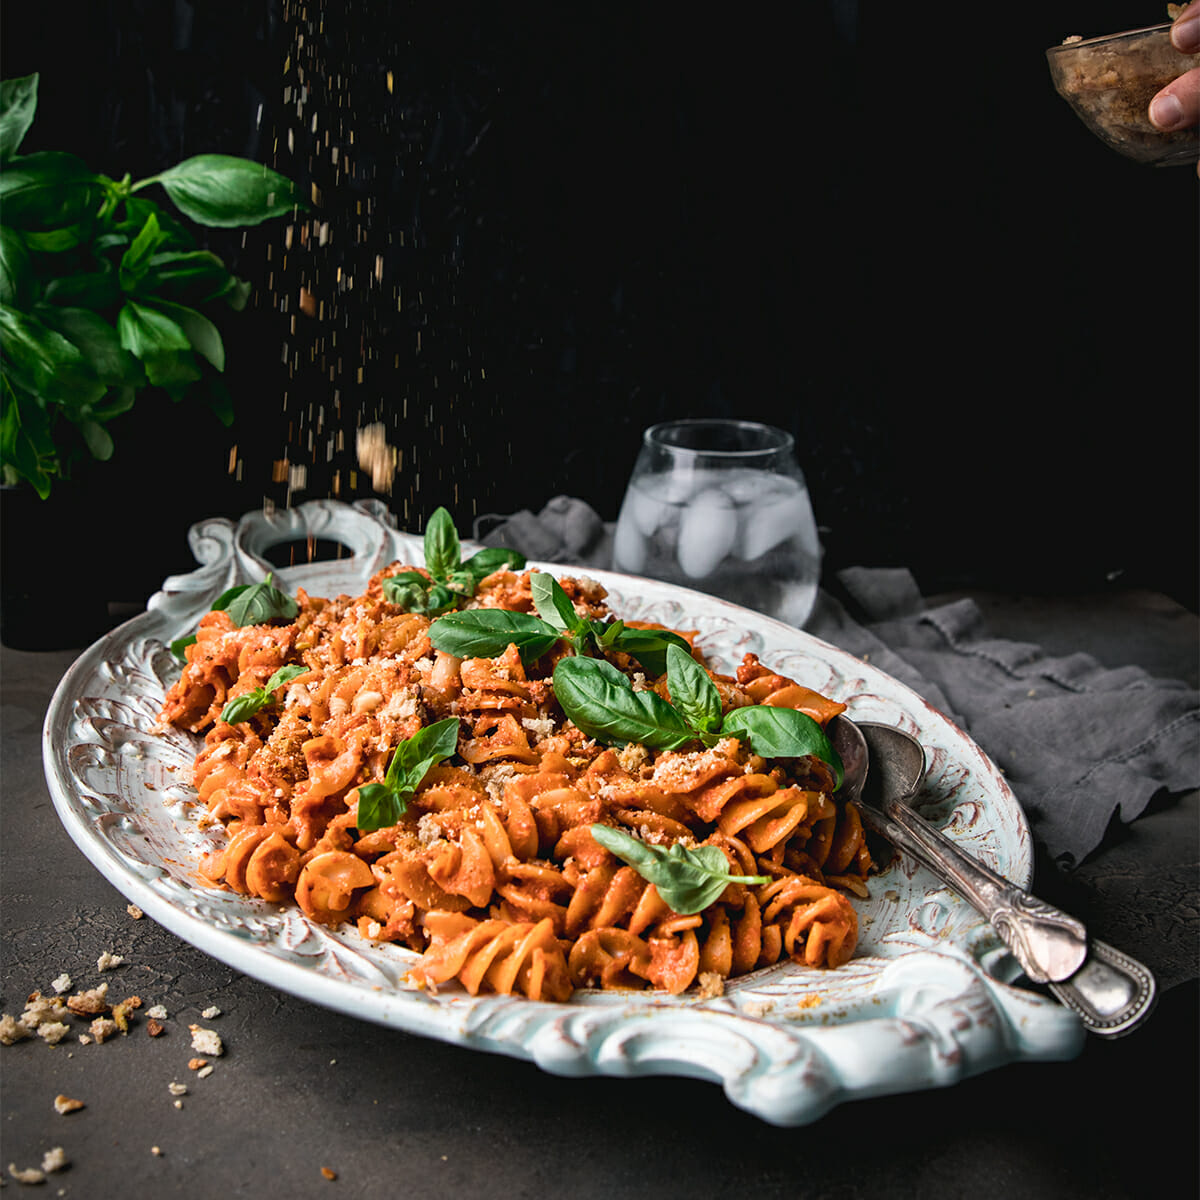 breadcrumbs sprinkled onto a plate of roasted red pepper pasta salad